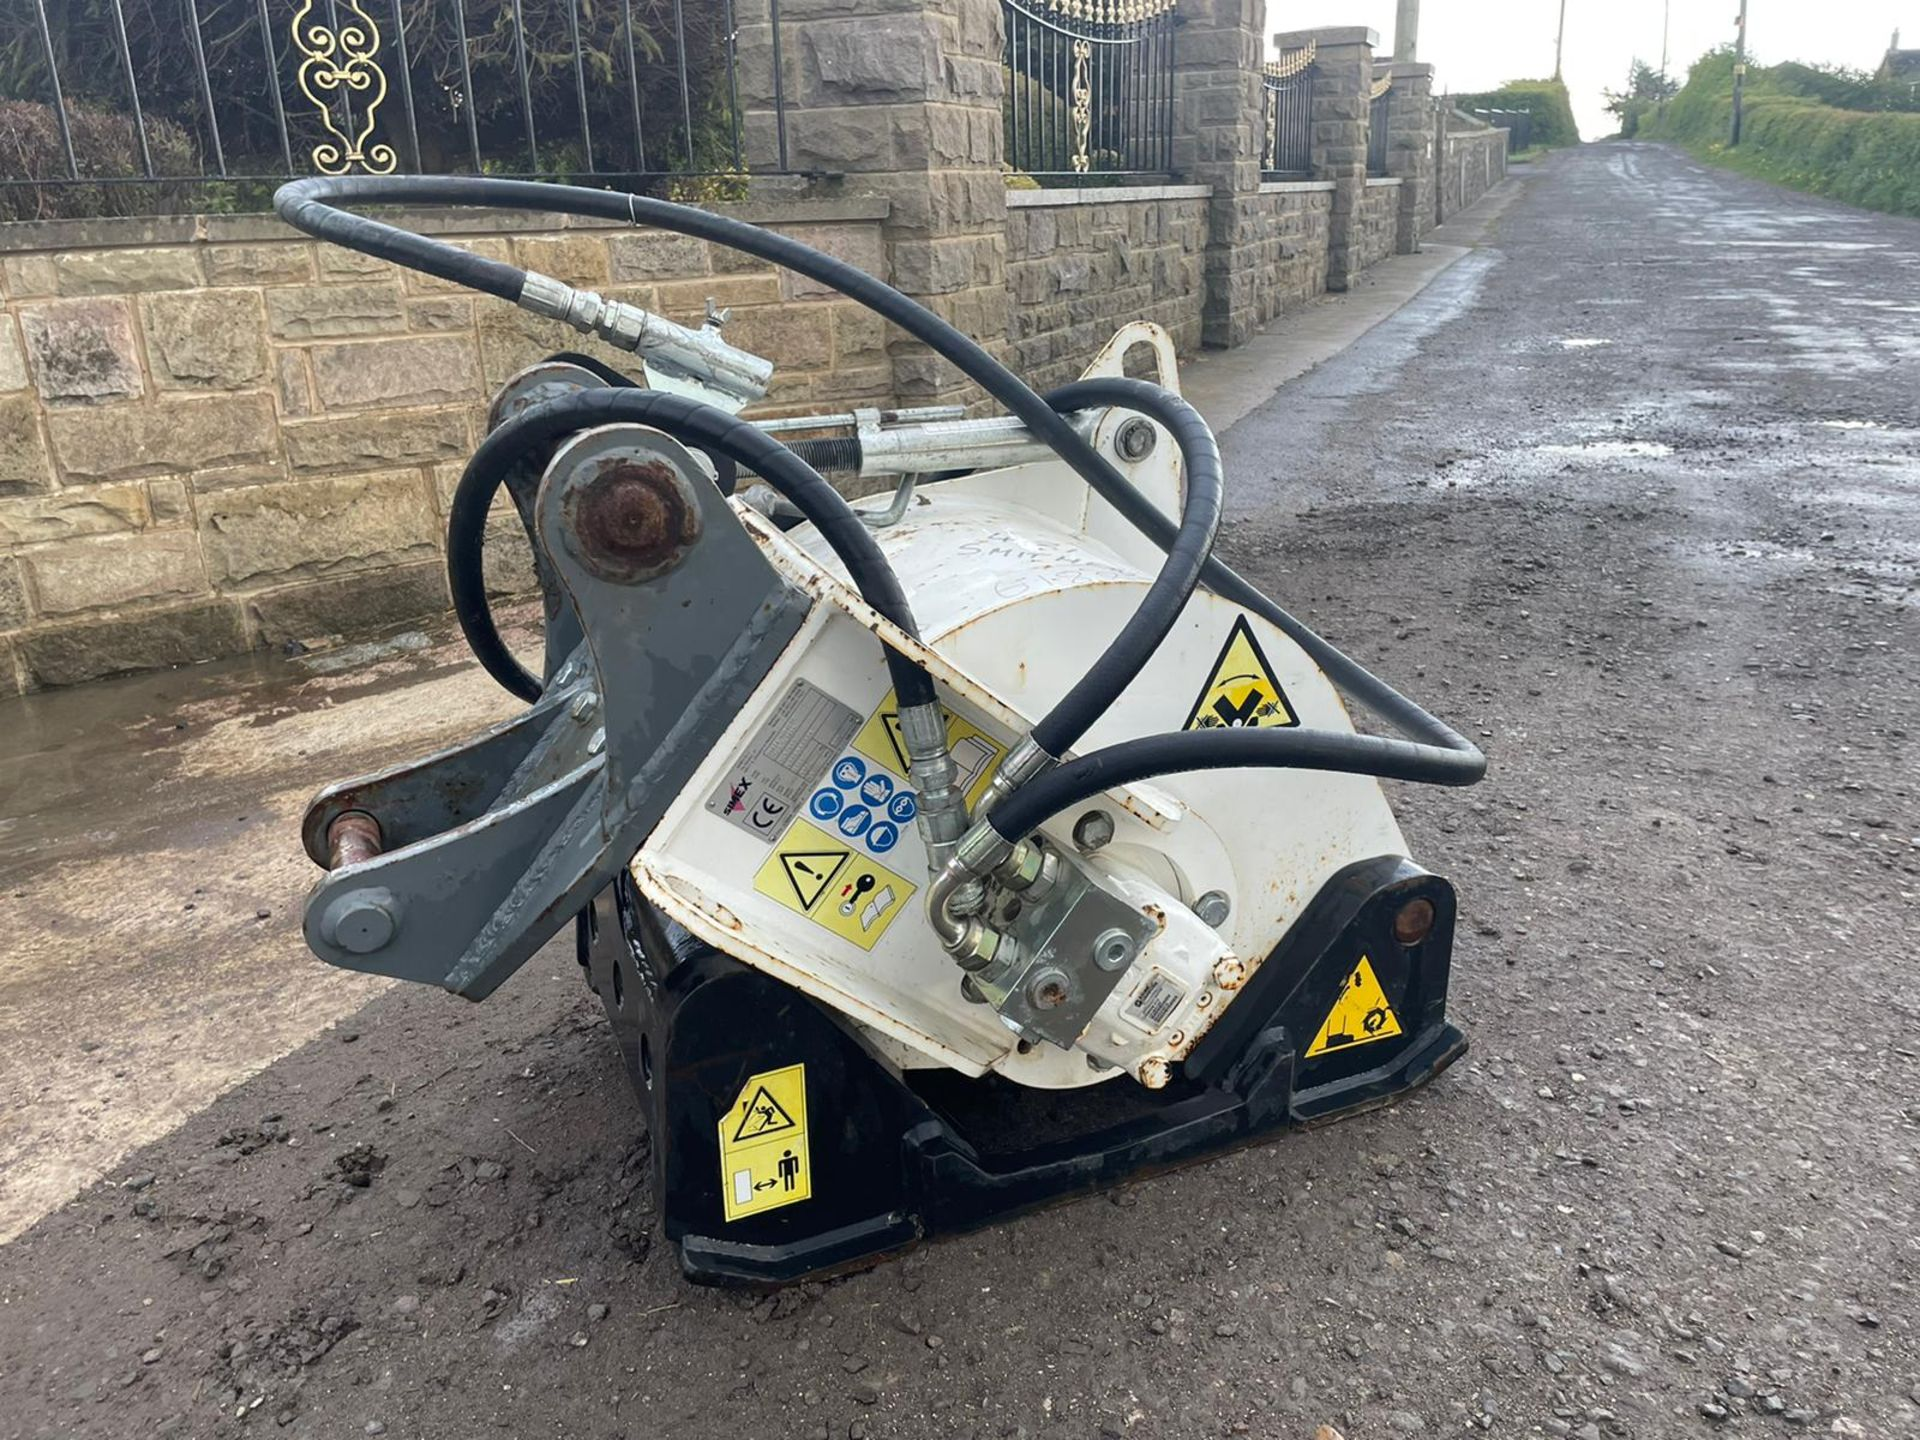 2011 SIMEX PLB 300 ROAD PLANER,HYDRAULIC DRIVEN, NOT DONE MUCH WORK, SUITABLE FOR EXCAVATOR PLUS VAT - Image 3 of 6